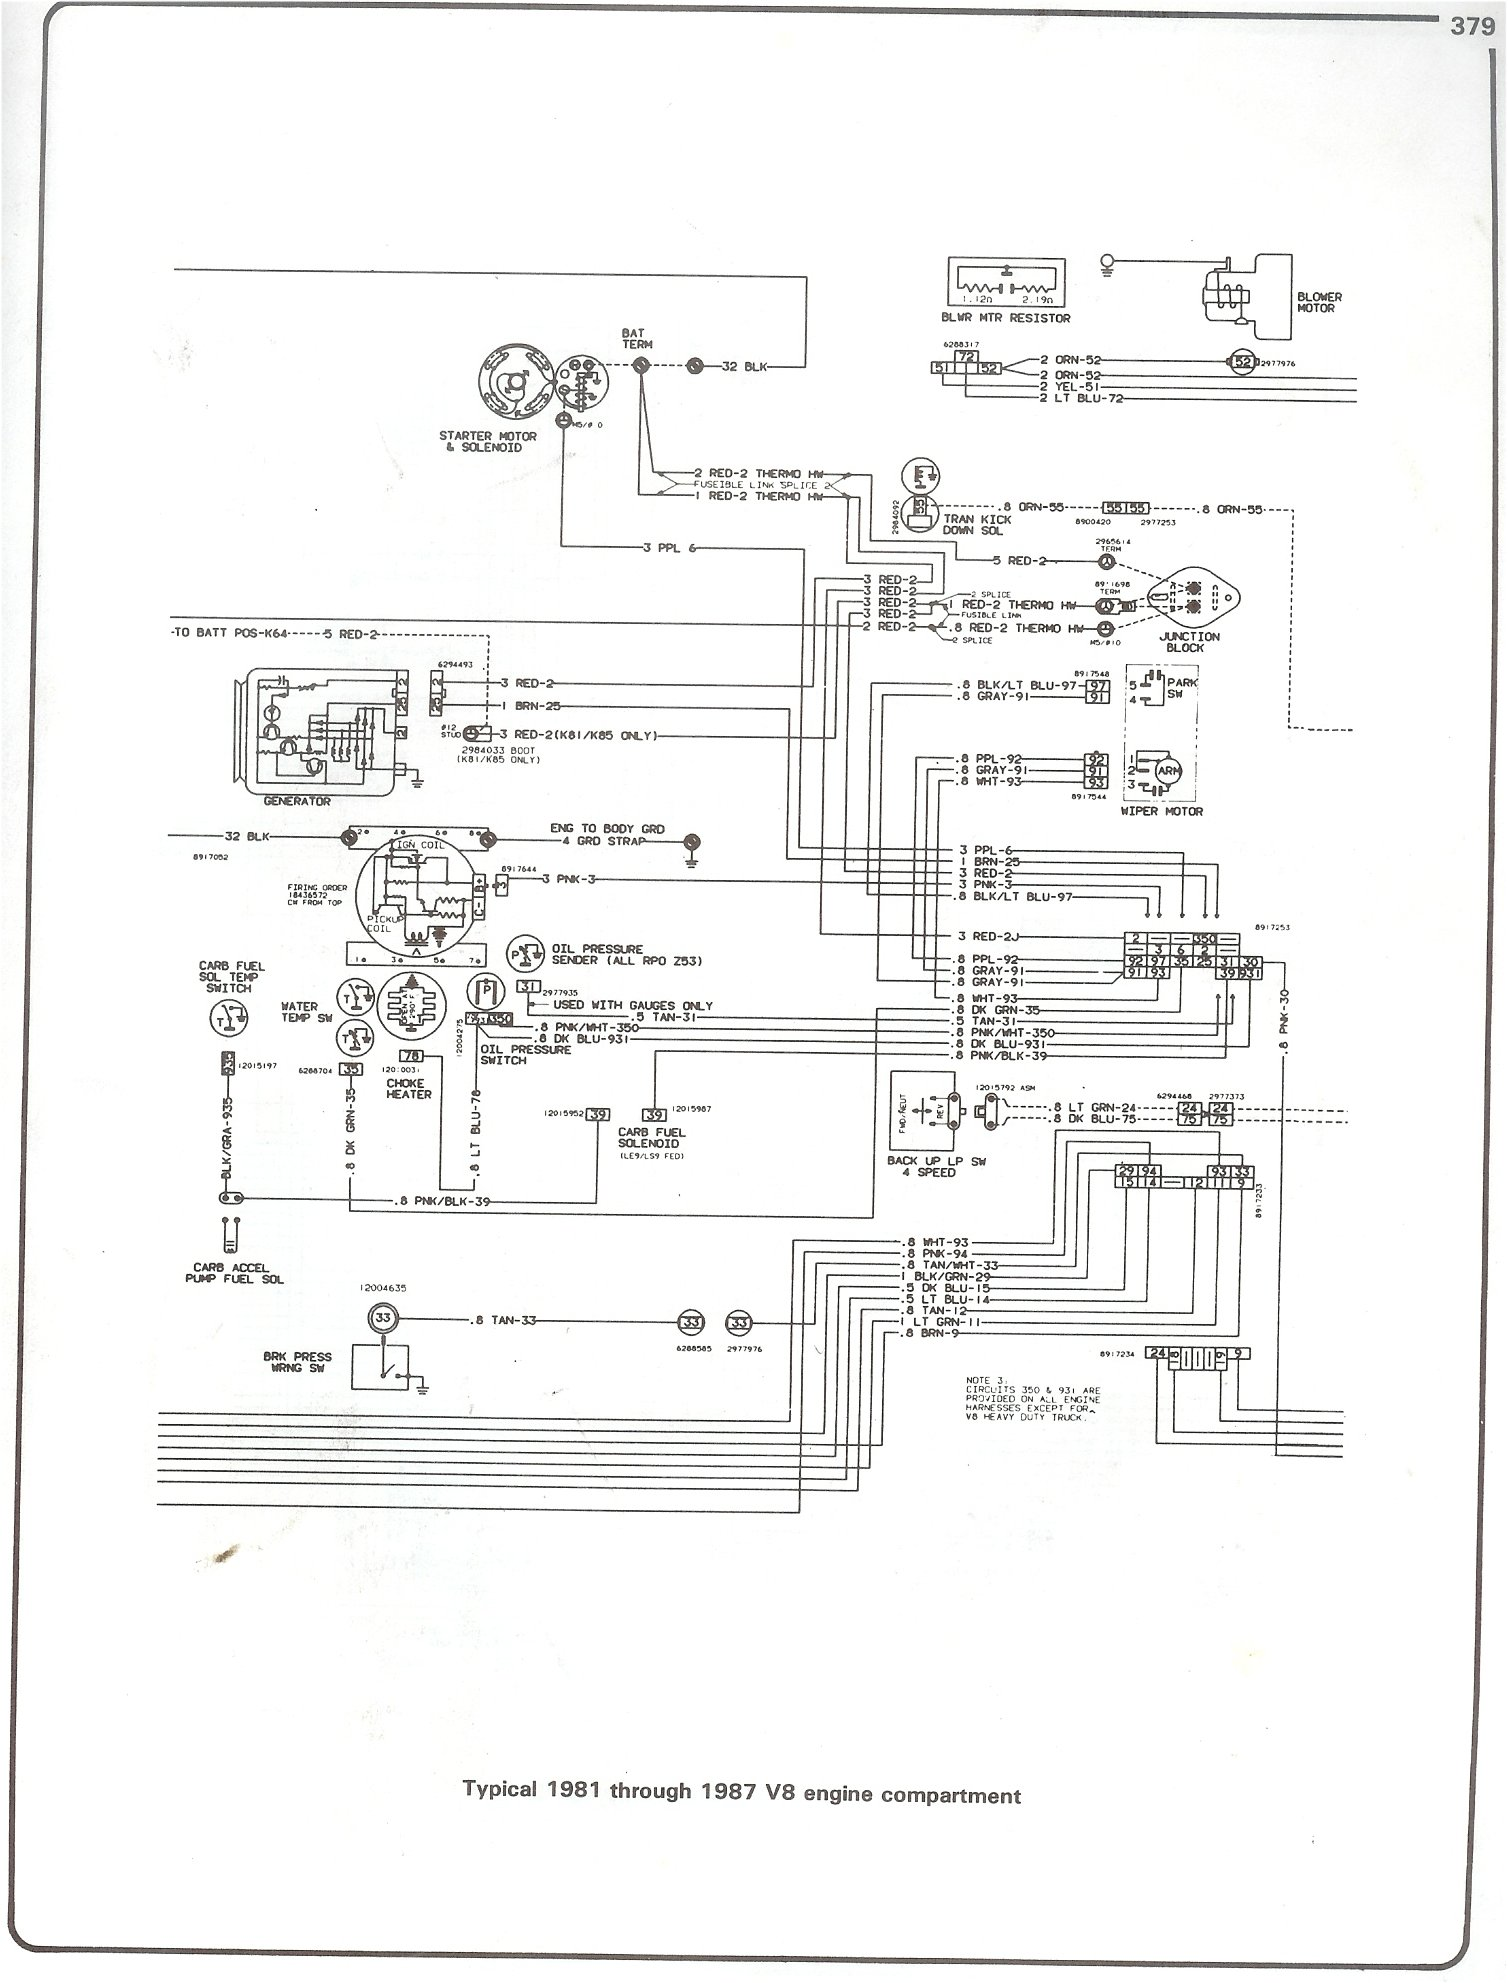 1983 Gm Cruise Control Wiring Diagram Everything About Aftermarket Library Rh 5 Codingcommunity De Chevrolet